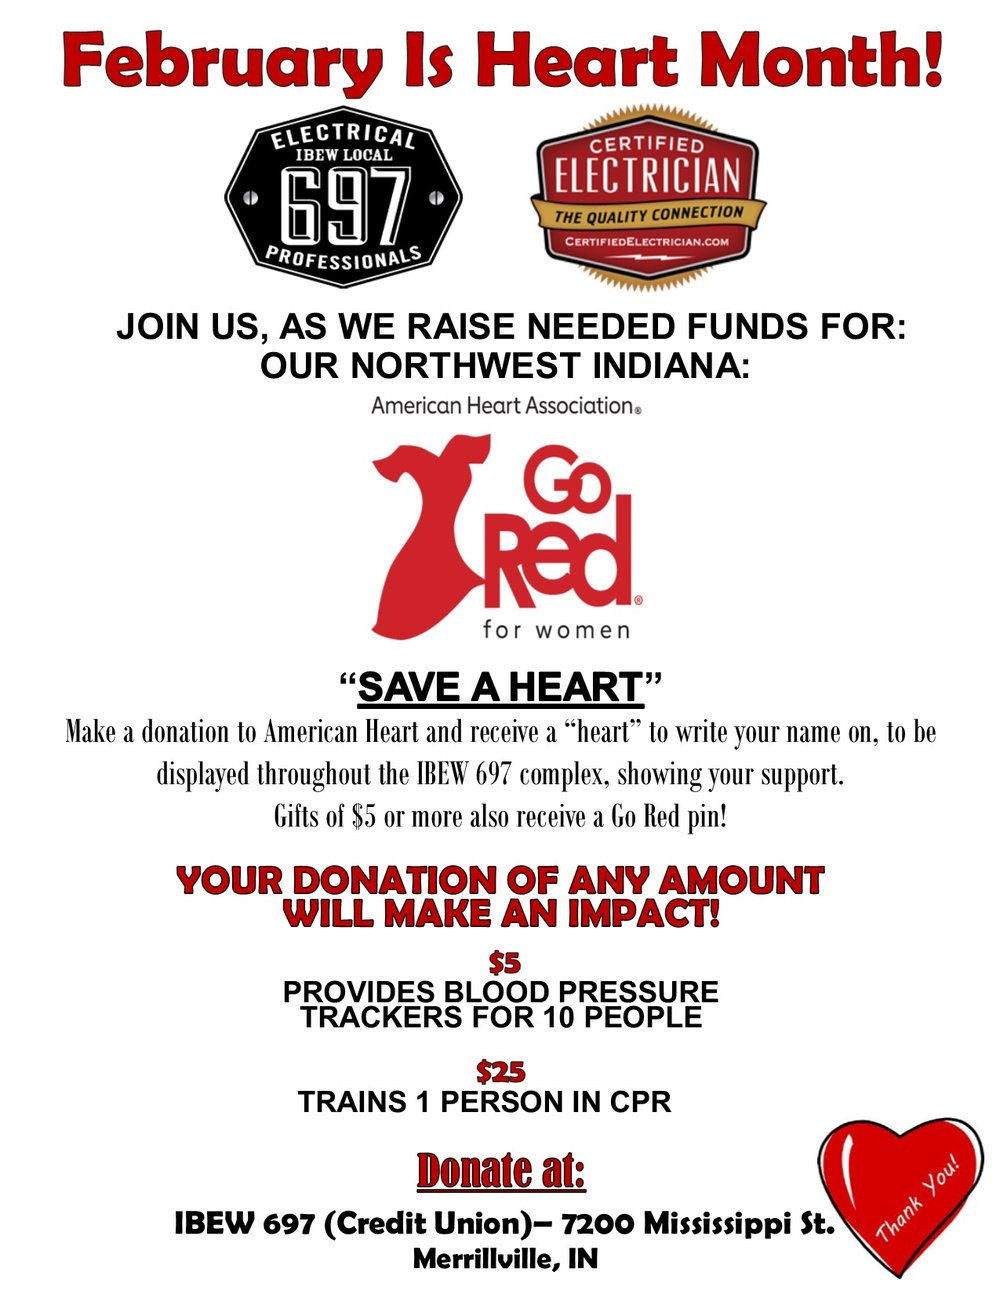 Go Red February Flyer.jpg